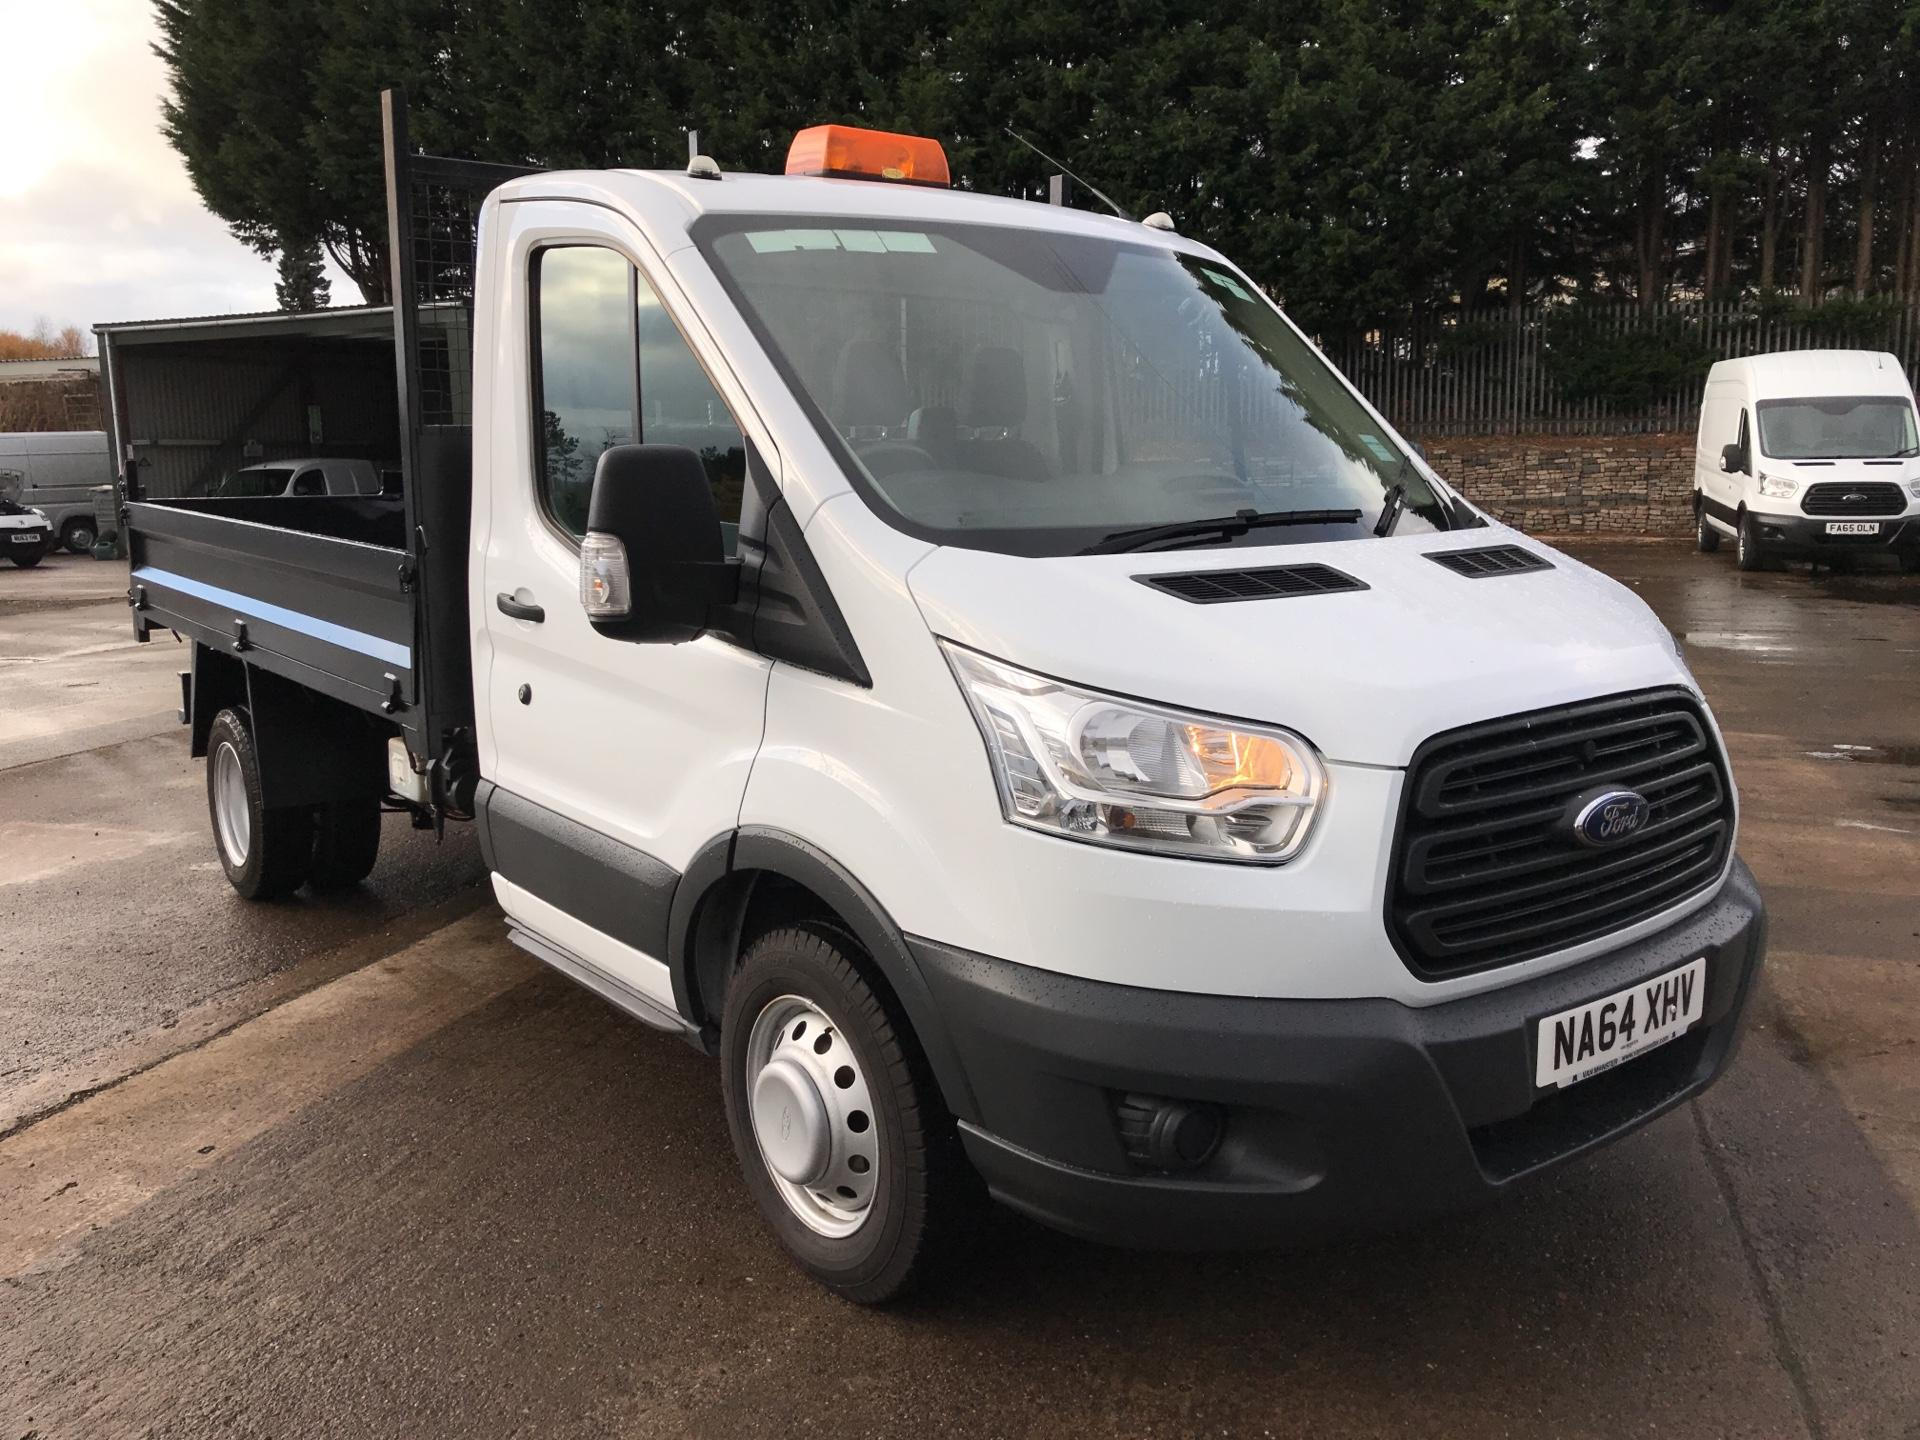 2014 Ford Transit 350 L2 SINGLE CAB TIPPER 125PS EURO 5 (NA64XHV)